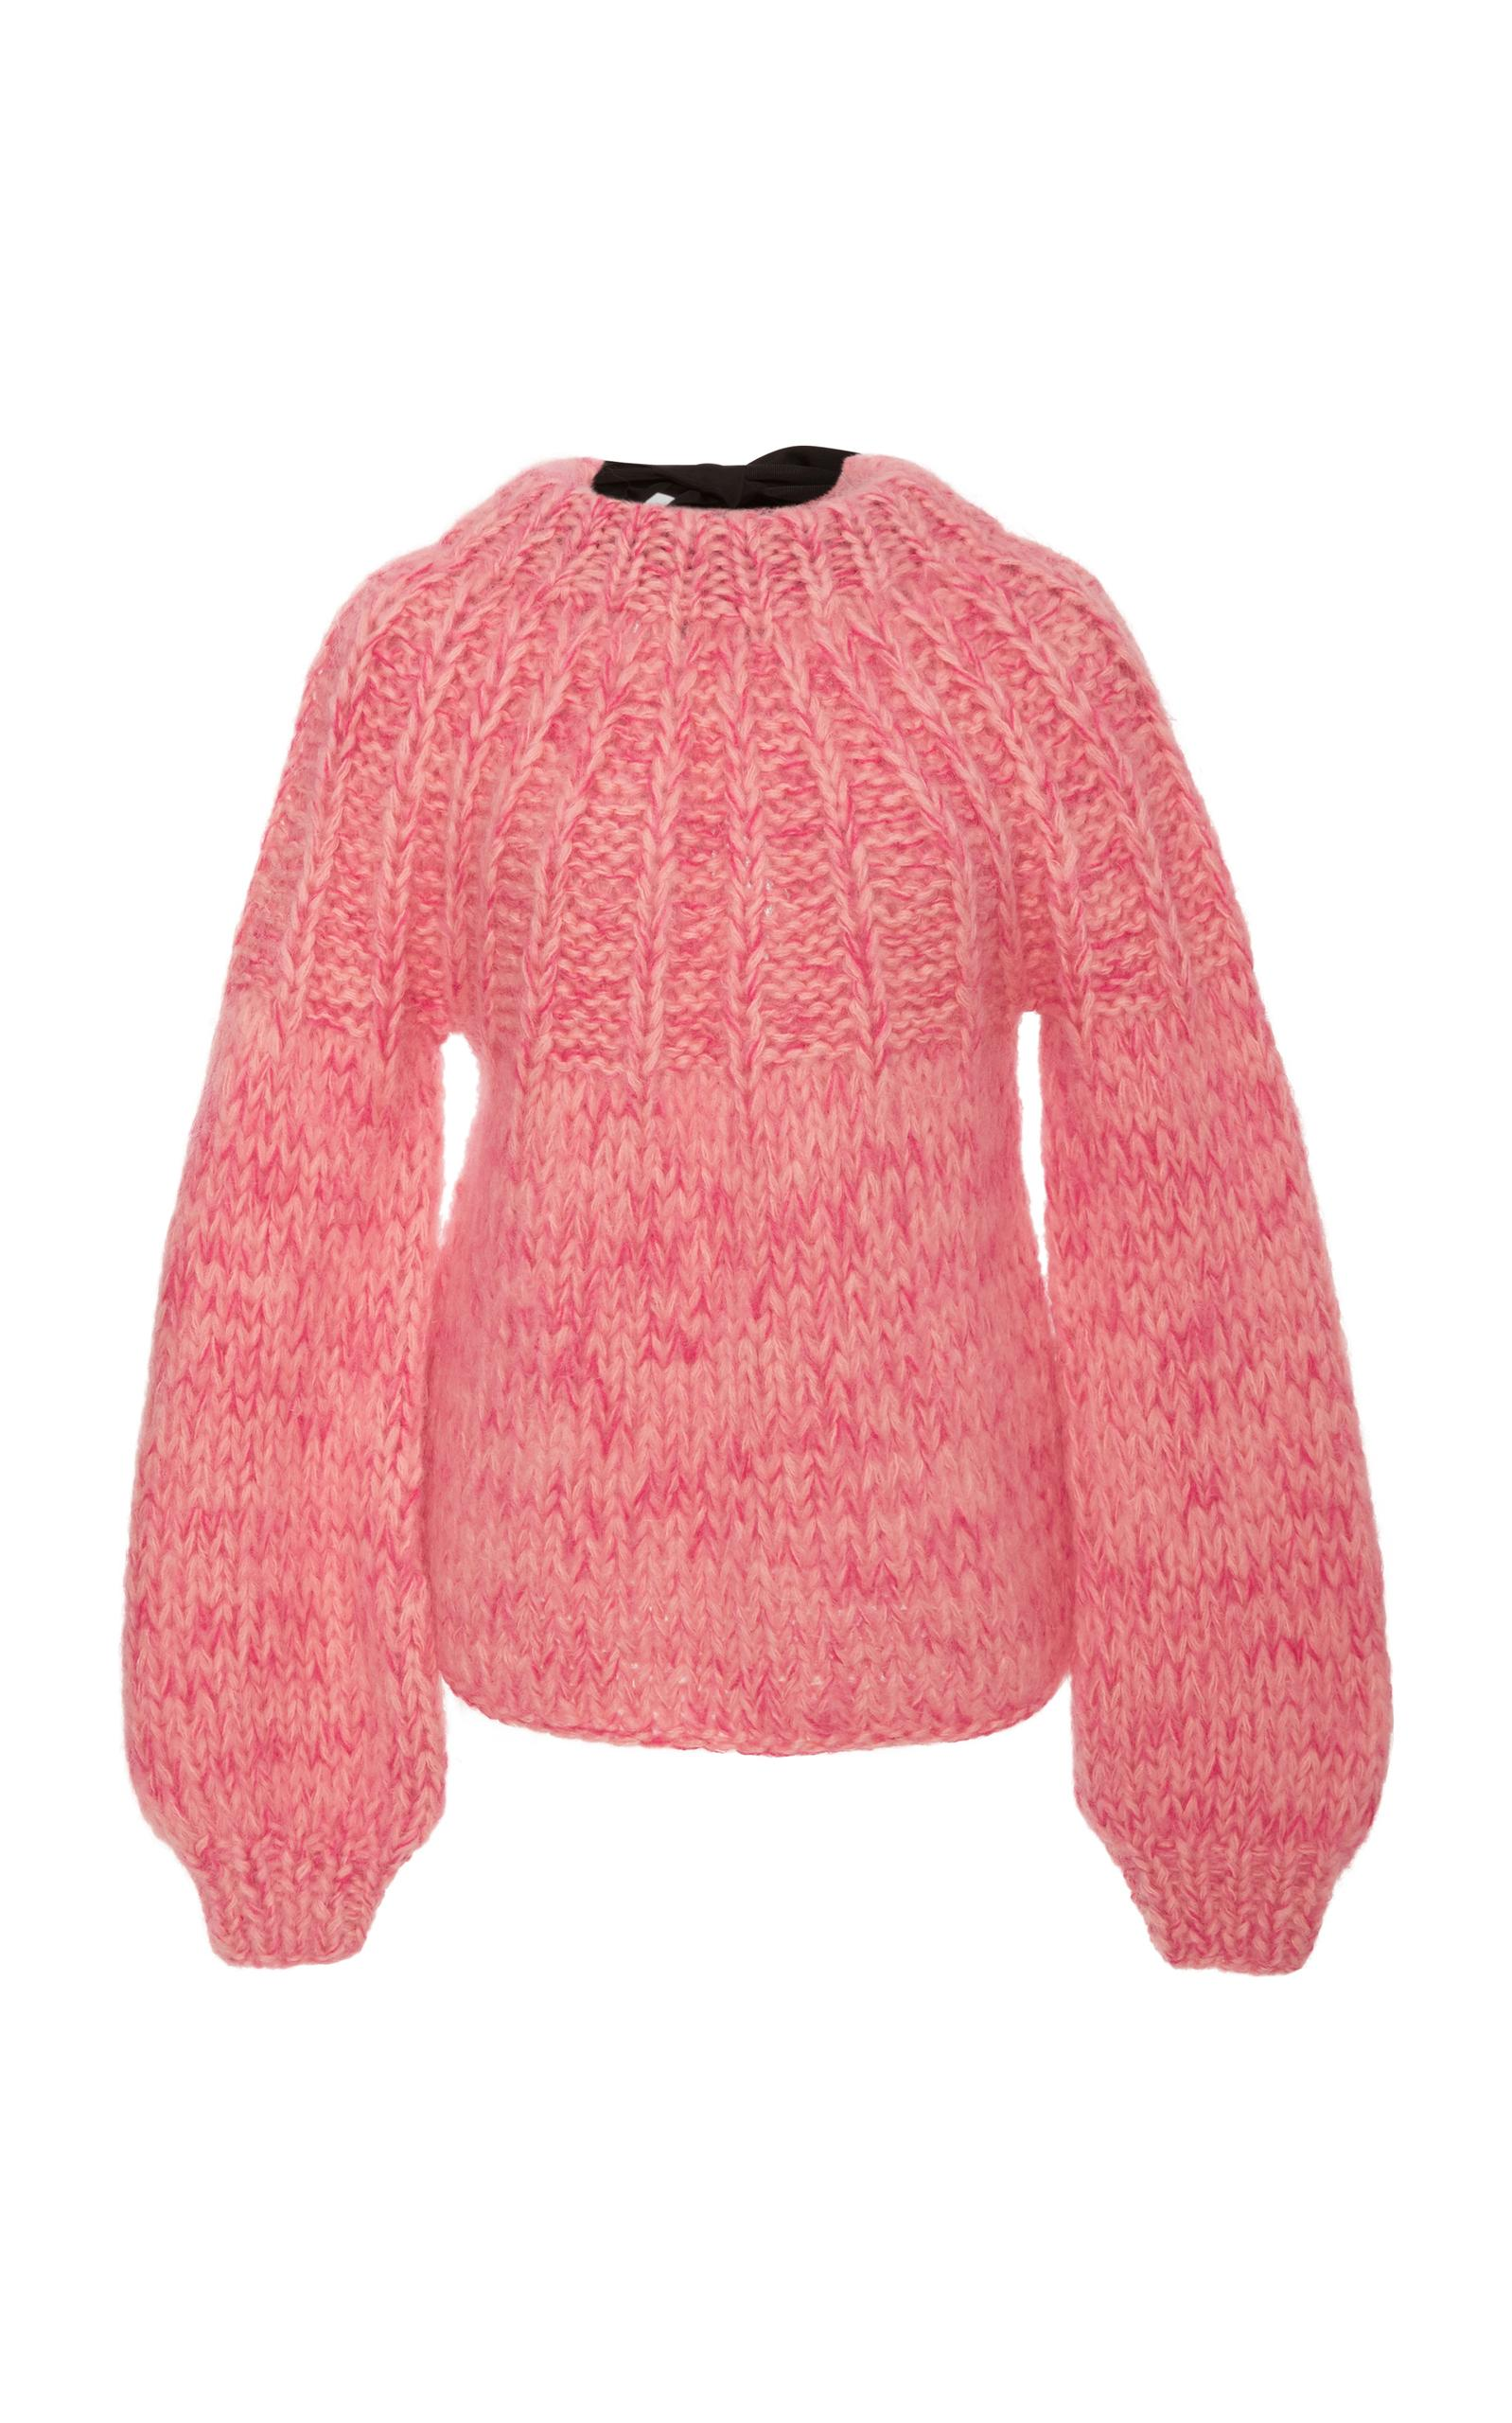 Ganni Julliard Bow-Embellished Mohair And Wool-Blend Sweater In Pink ... 32883f15a